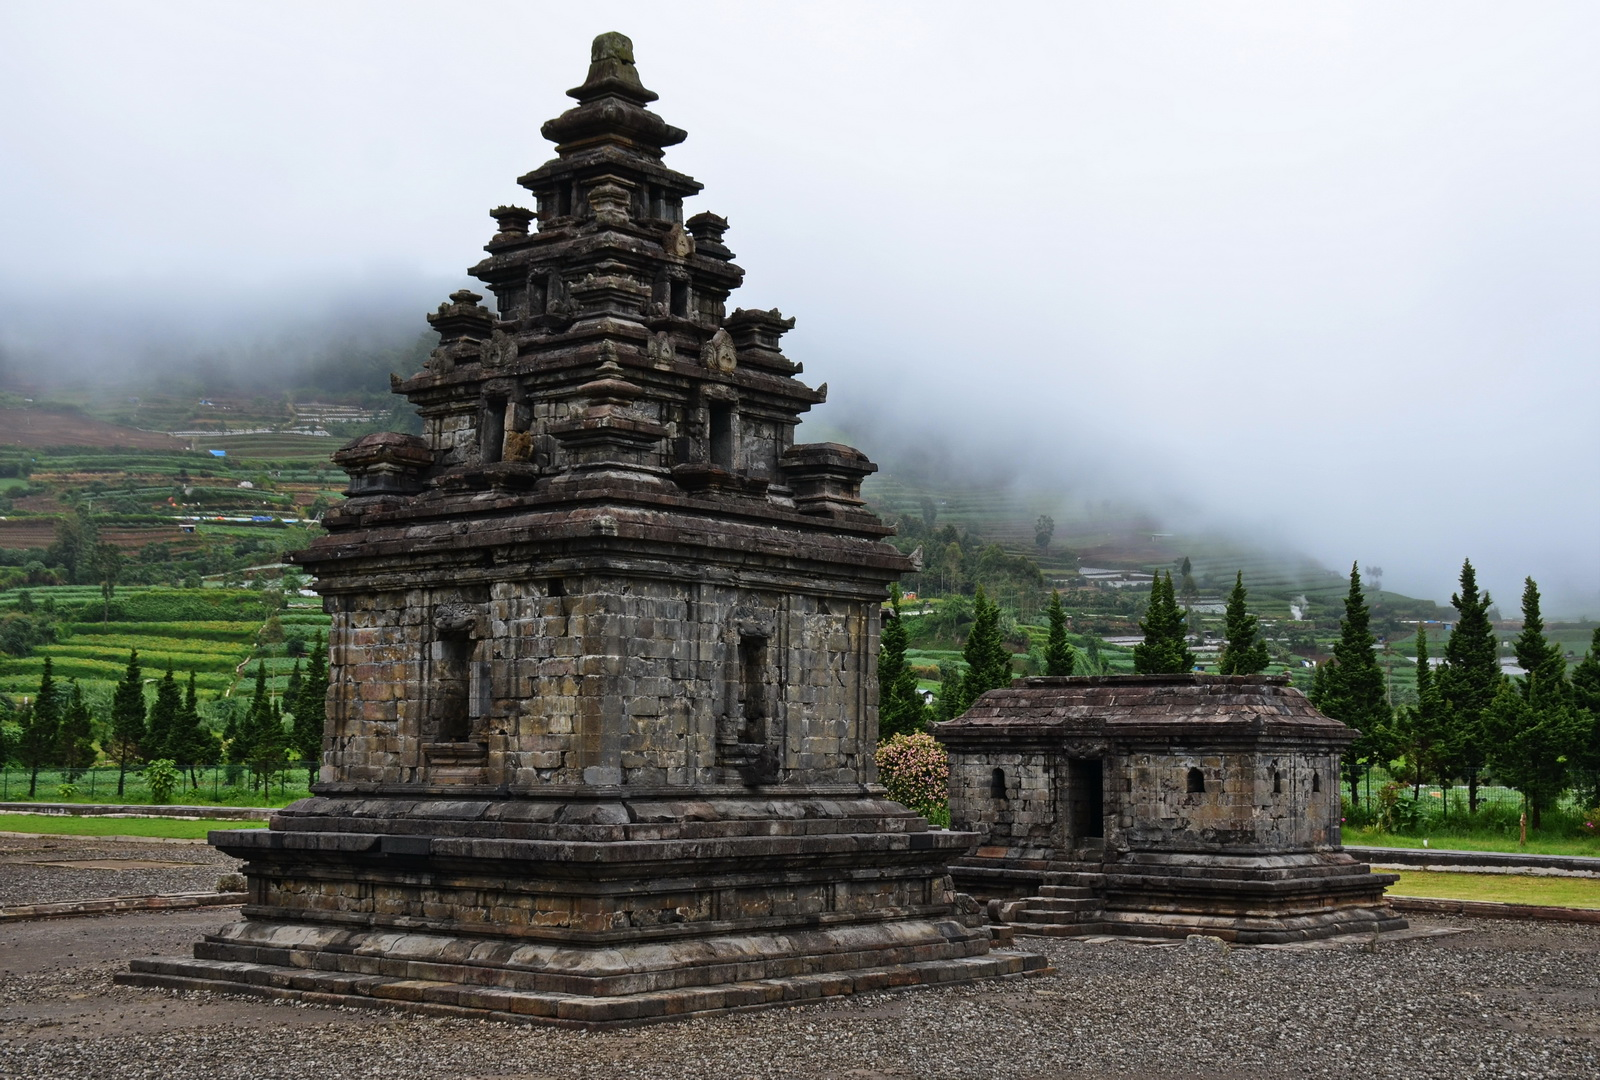 Indonesia. 7th or 8th-century temple